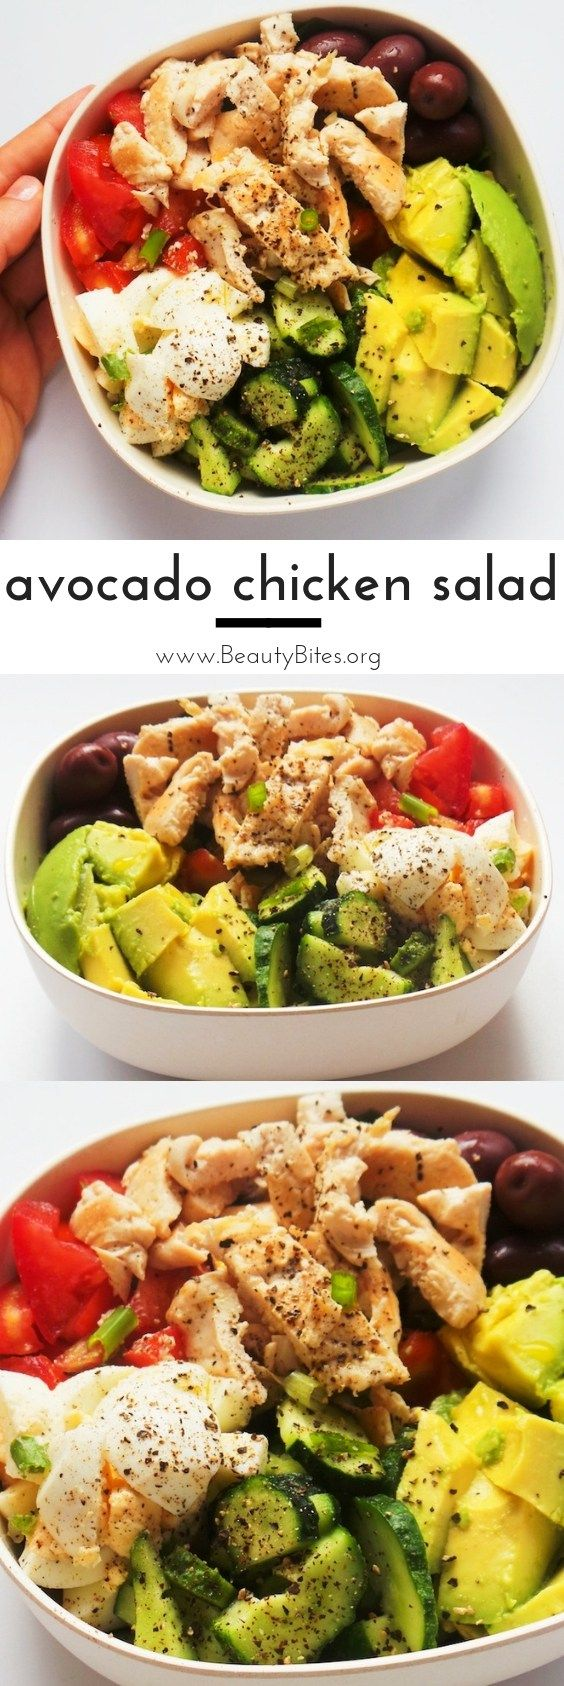 Healthy Avocado Chicken Salad Recipe | Low Carb + Meal Prep Option images